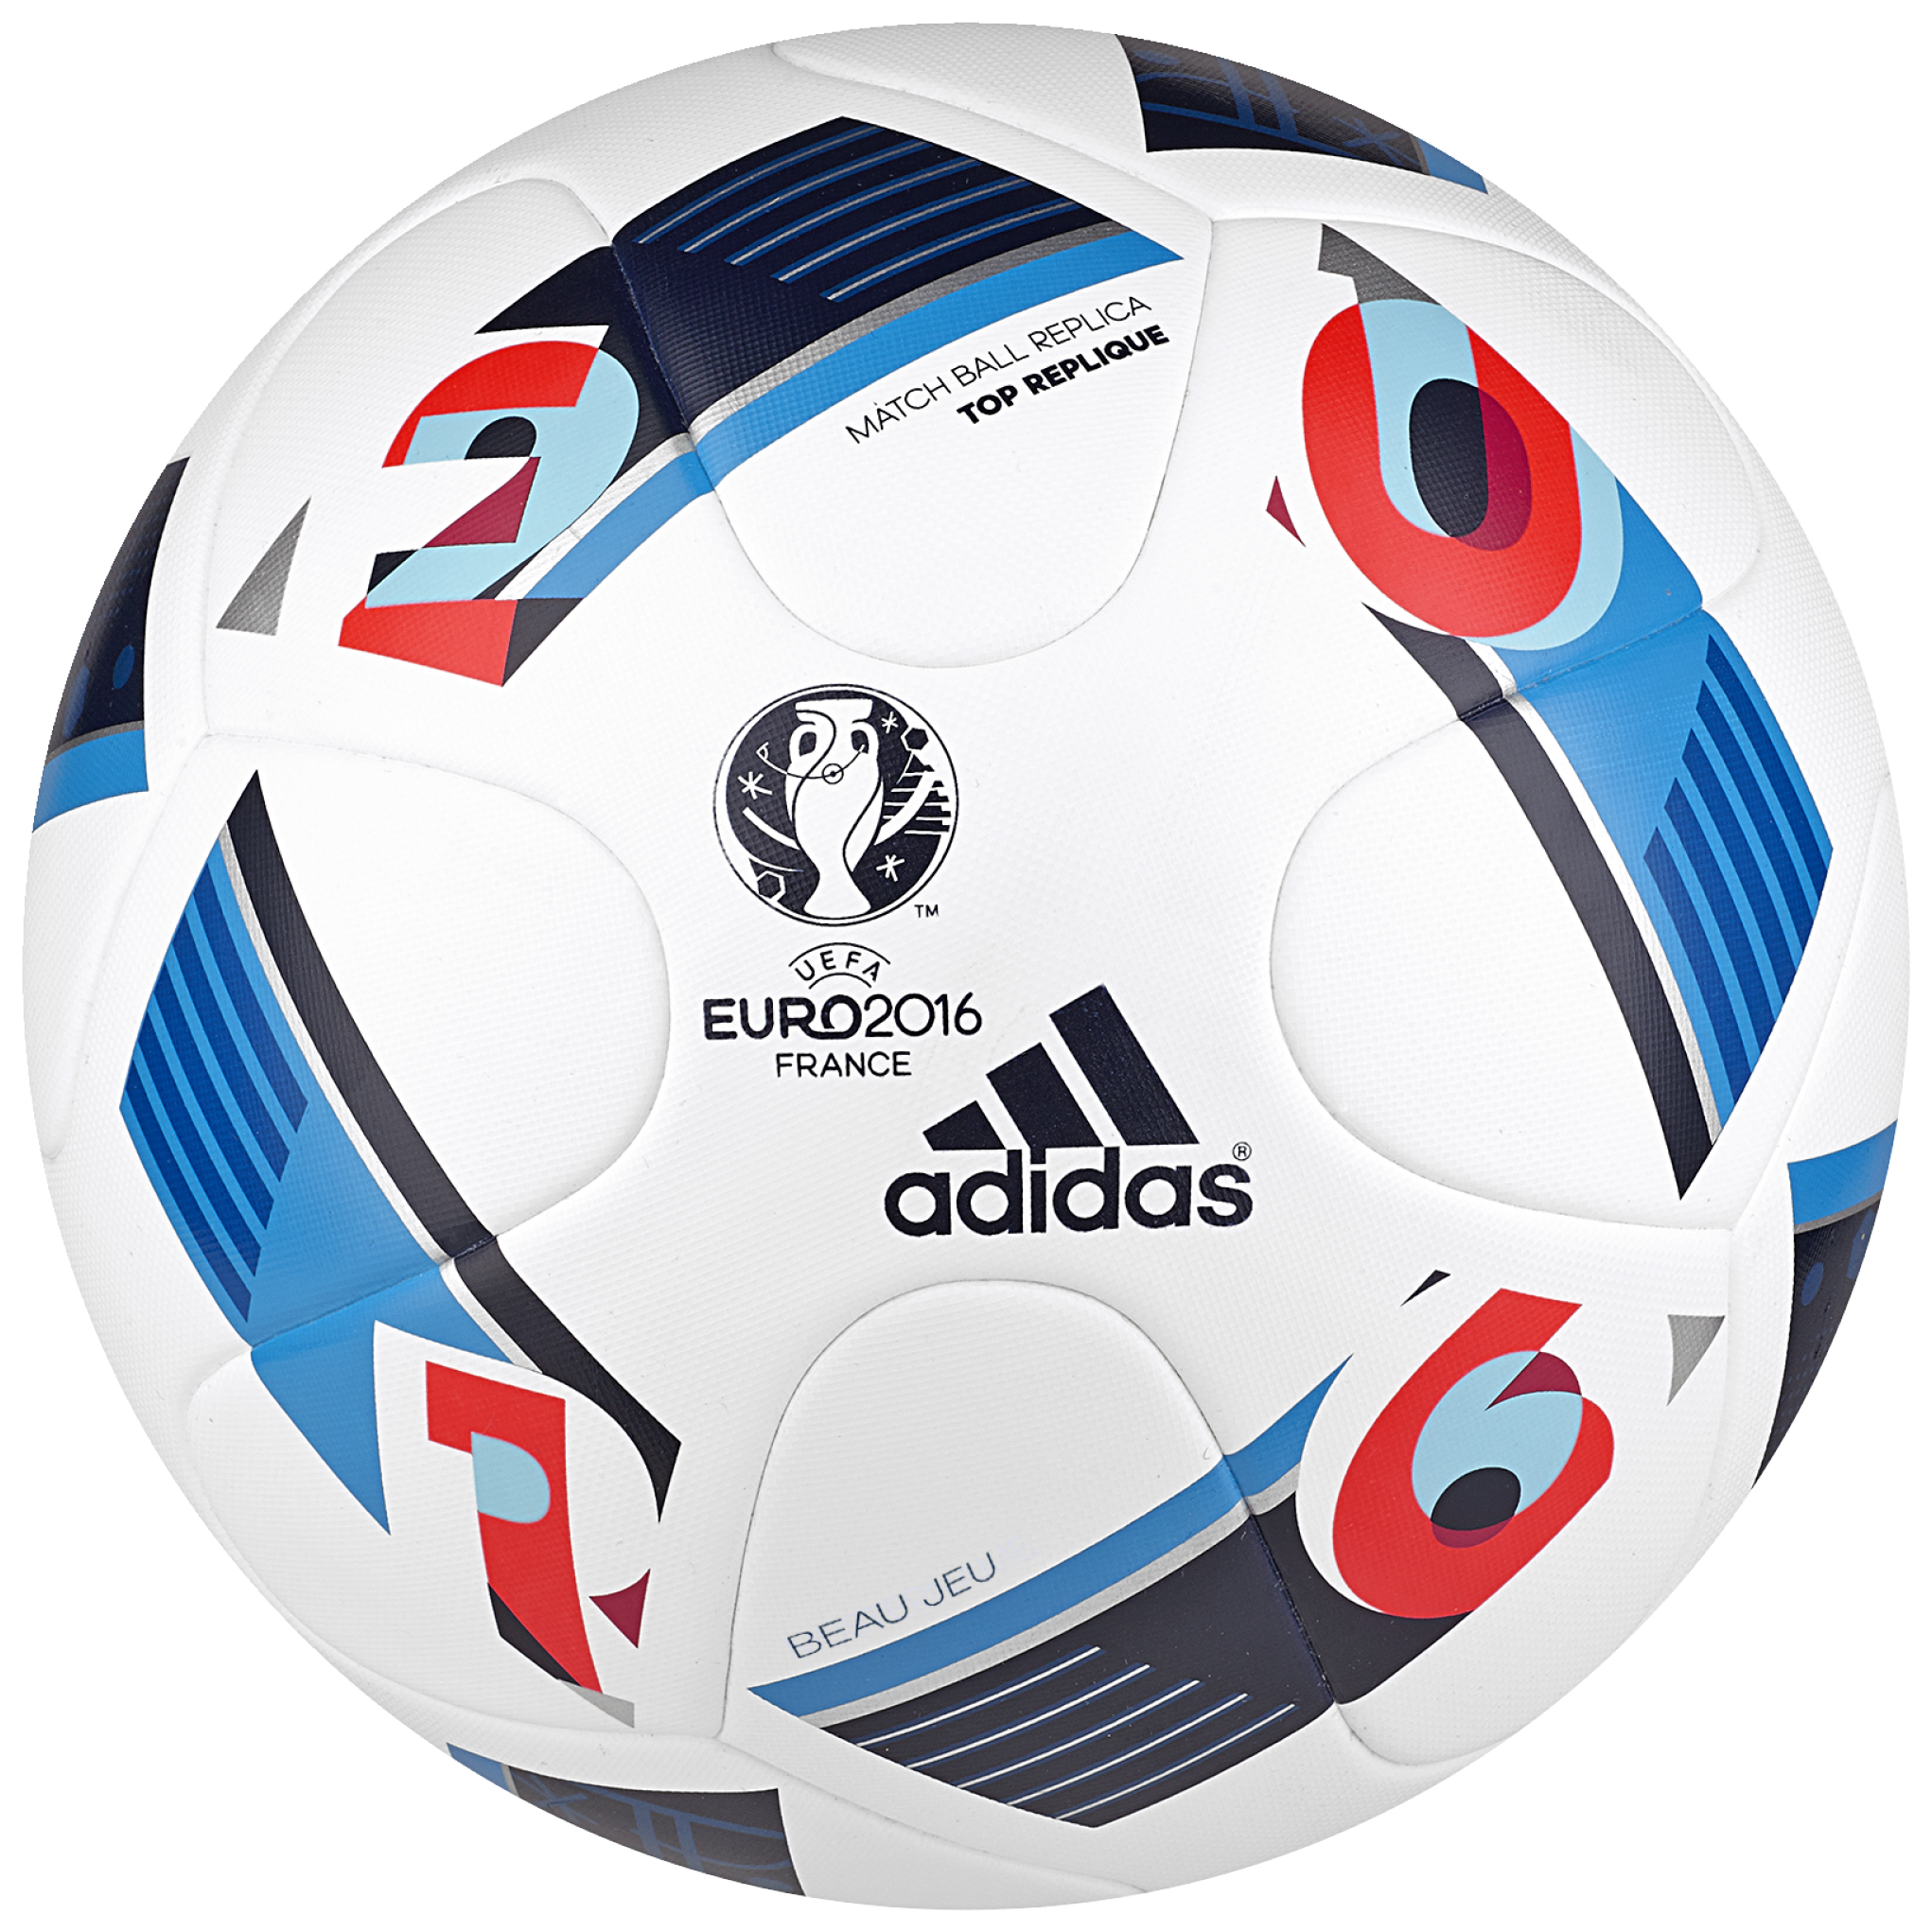 Adidas clipart sport Gallery size France Cup 2016